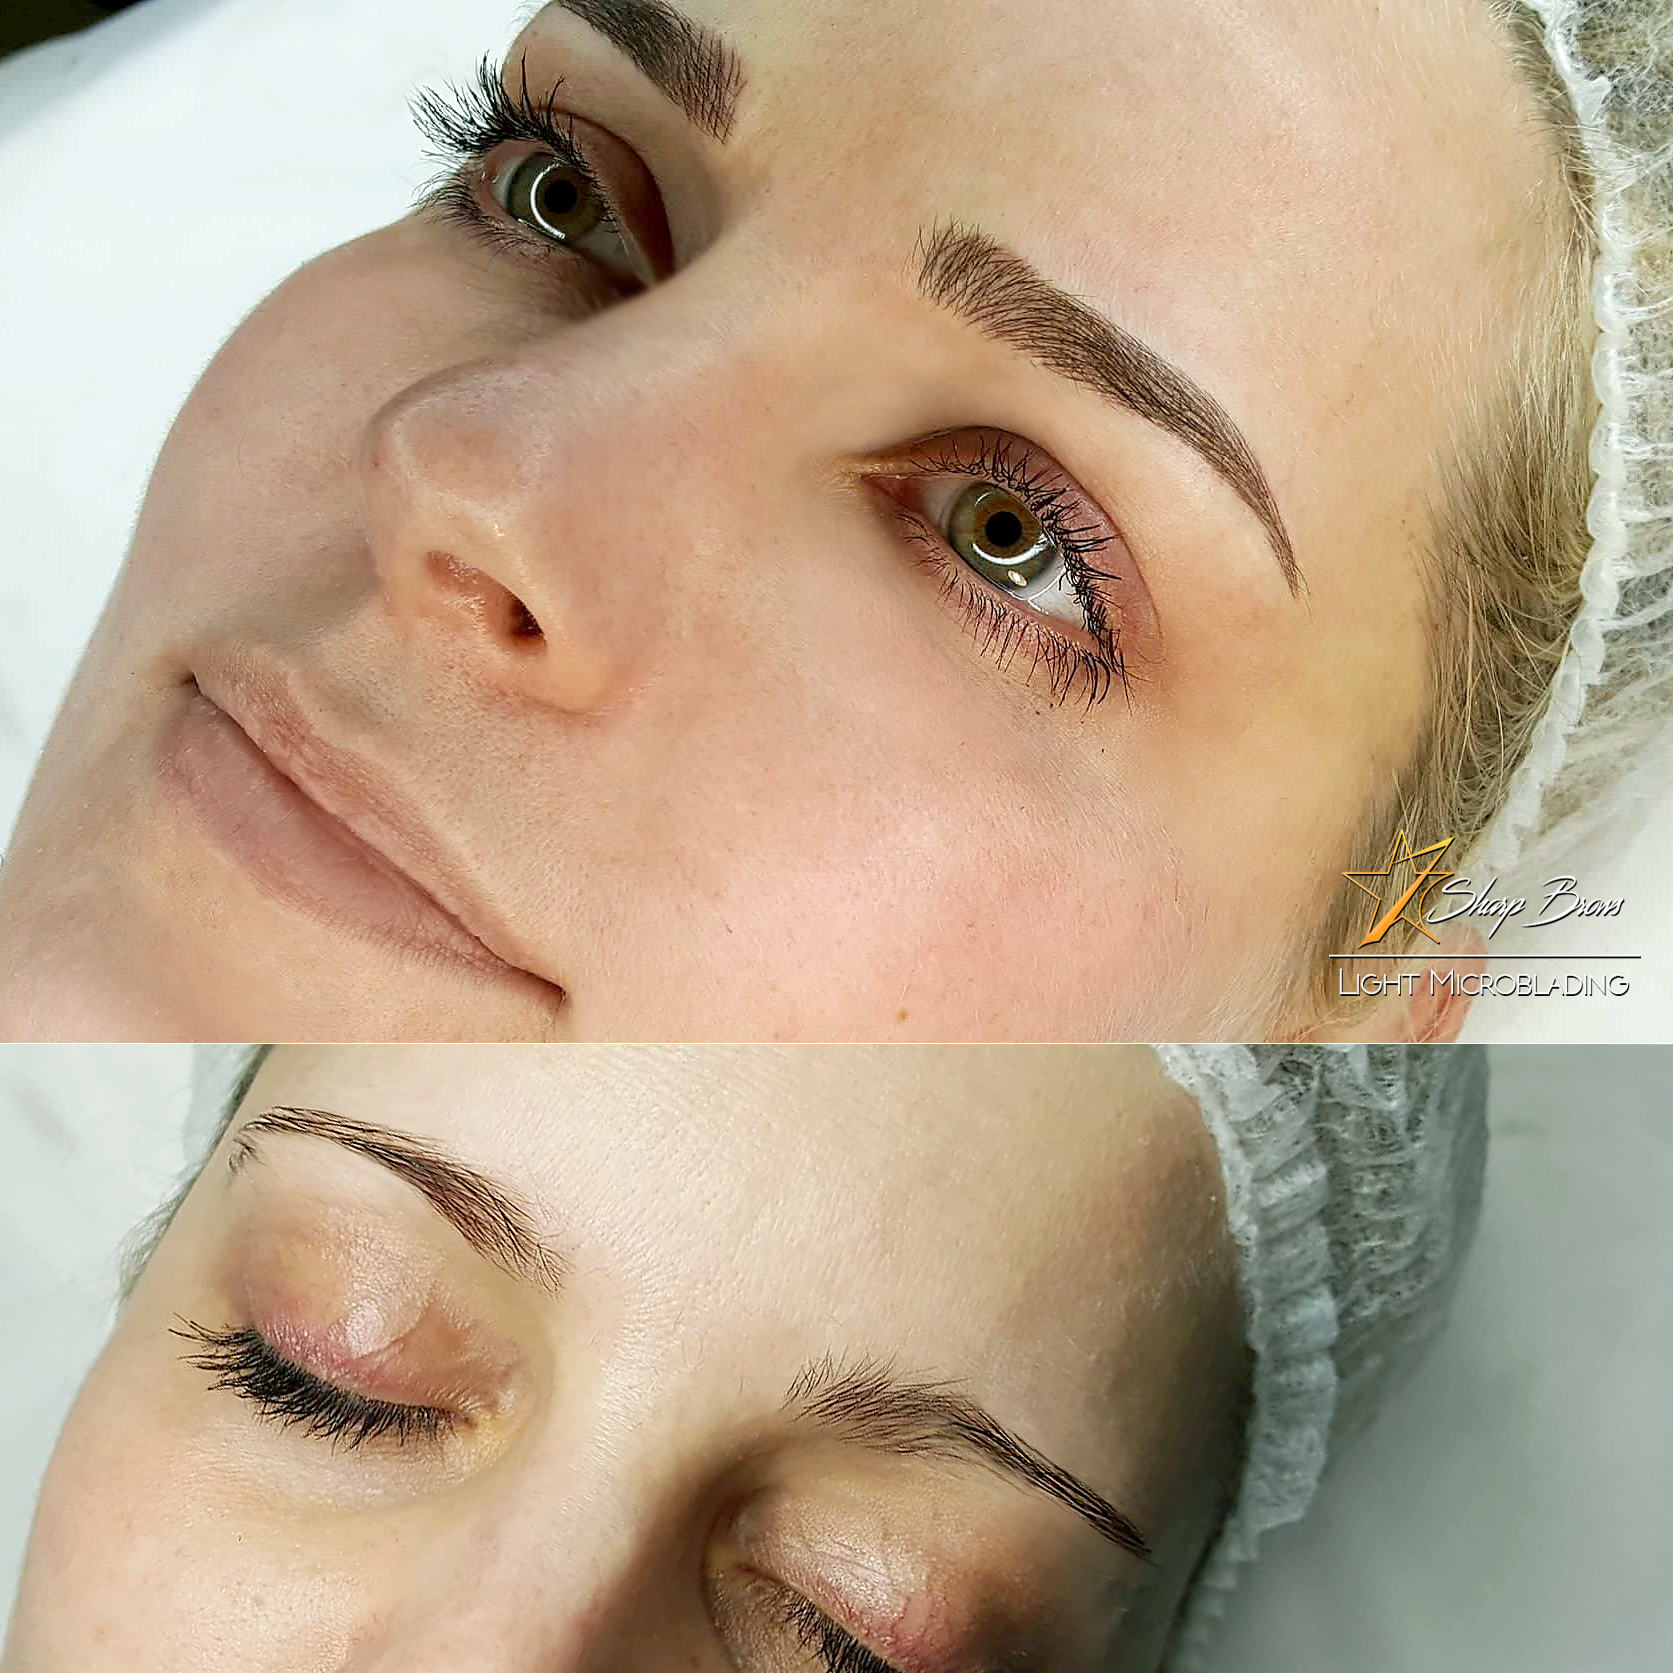 Here's a fine sample of how SharpBrows Light microblading can change the whole appearance of a human face. Brow shape is modified and filled in the correct way.